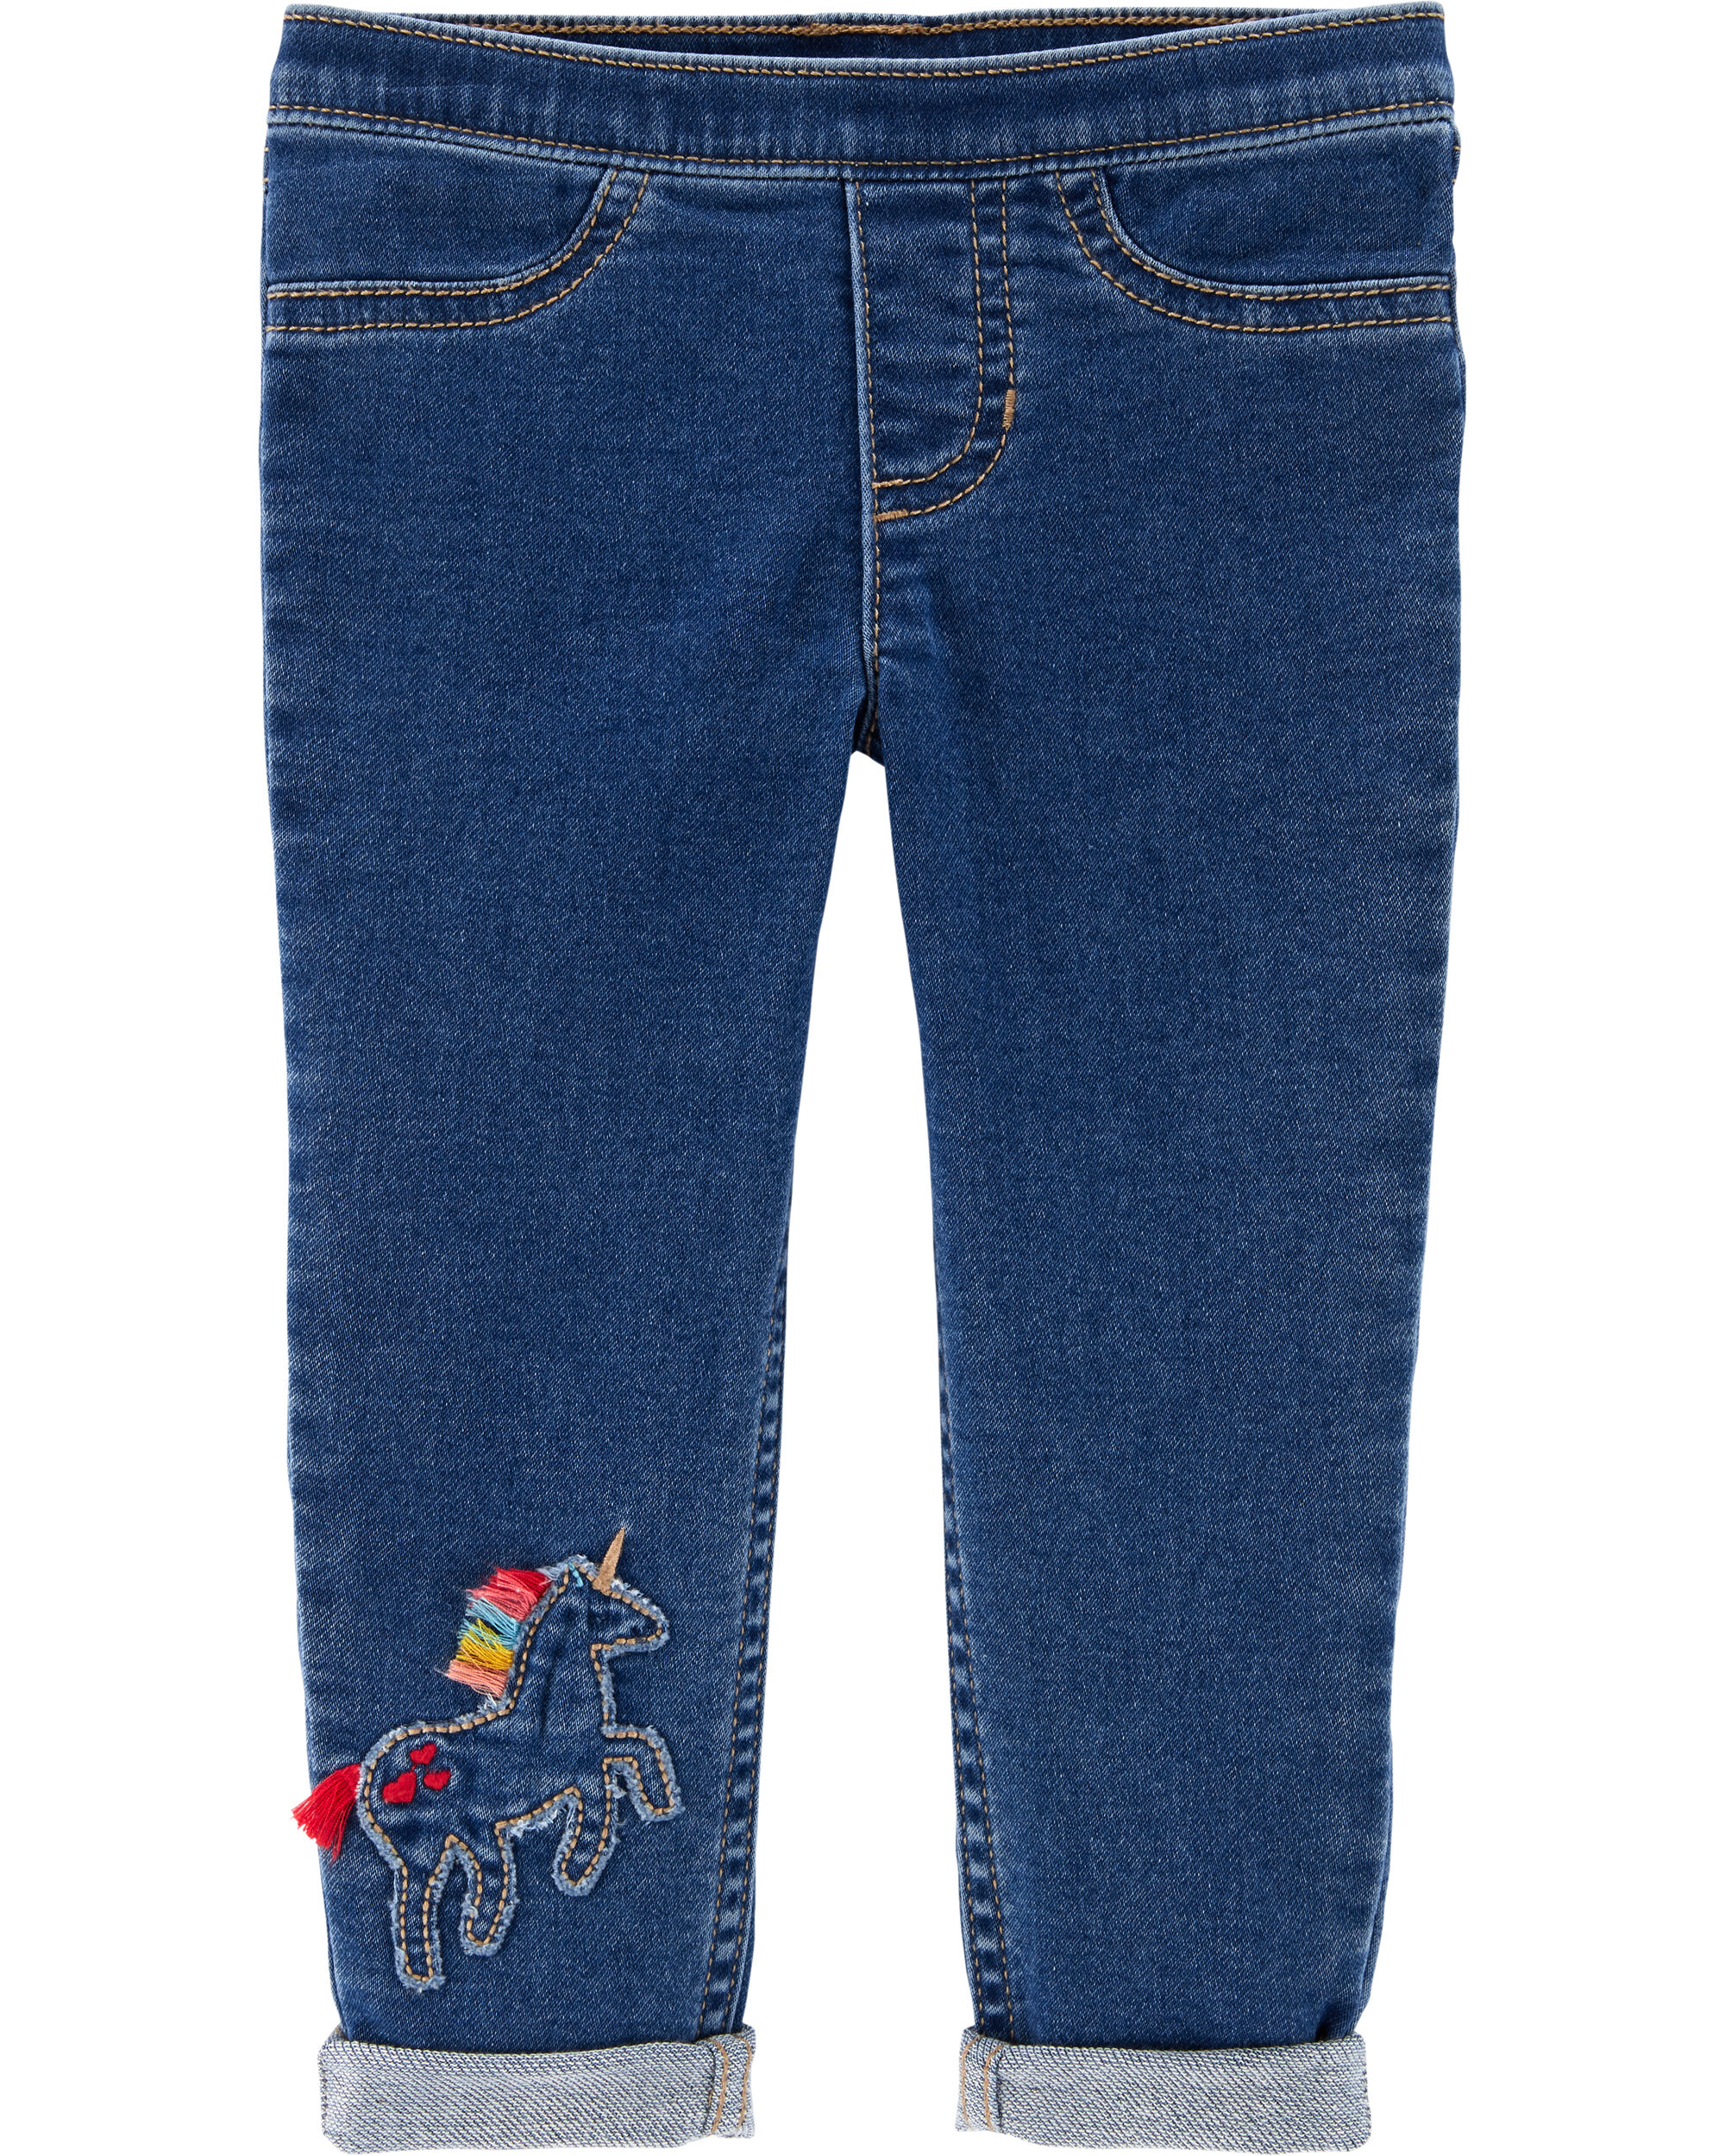 *CLEARANCE* Unicorn Pull-On Jeggings